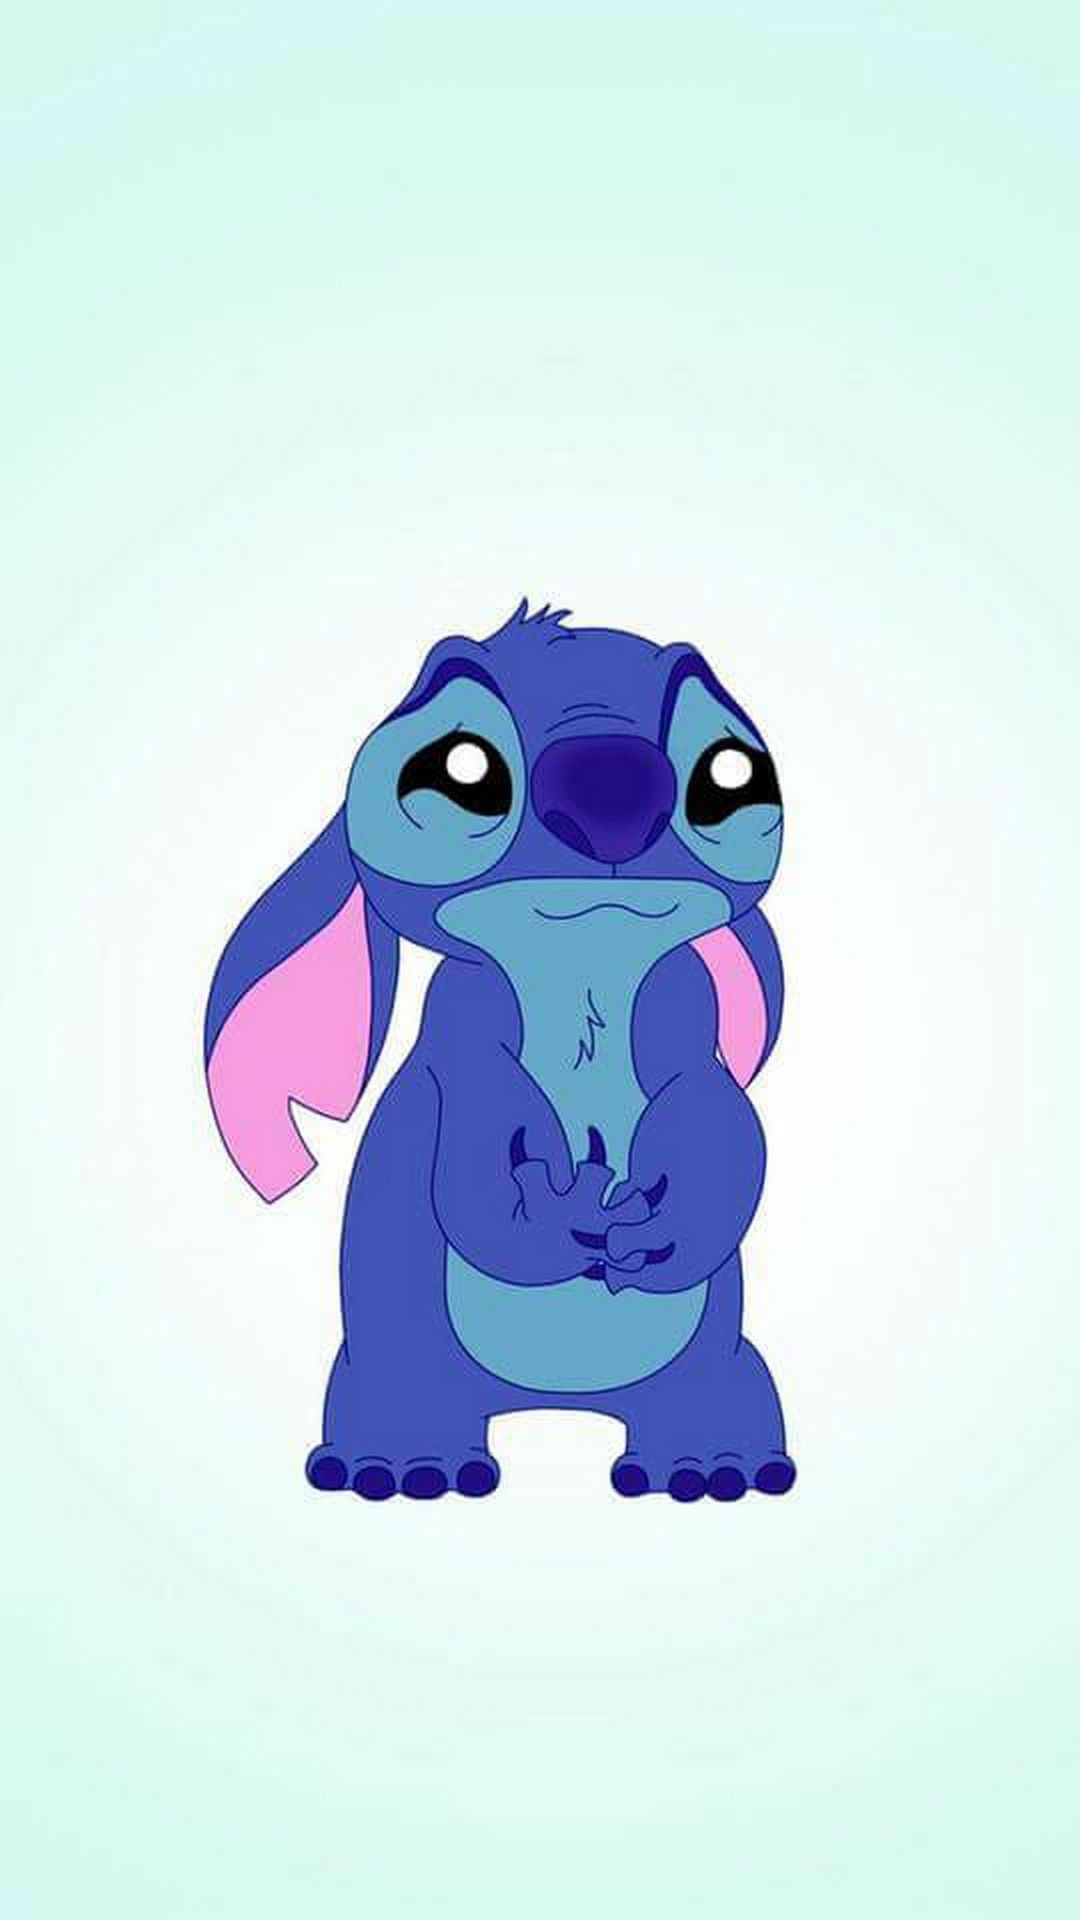 69 690242 lock screen cute stitch wallpapers don t touch